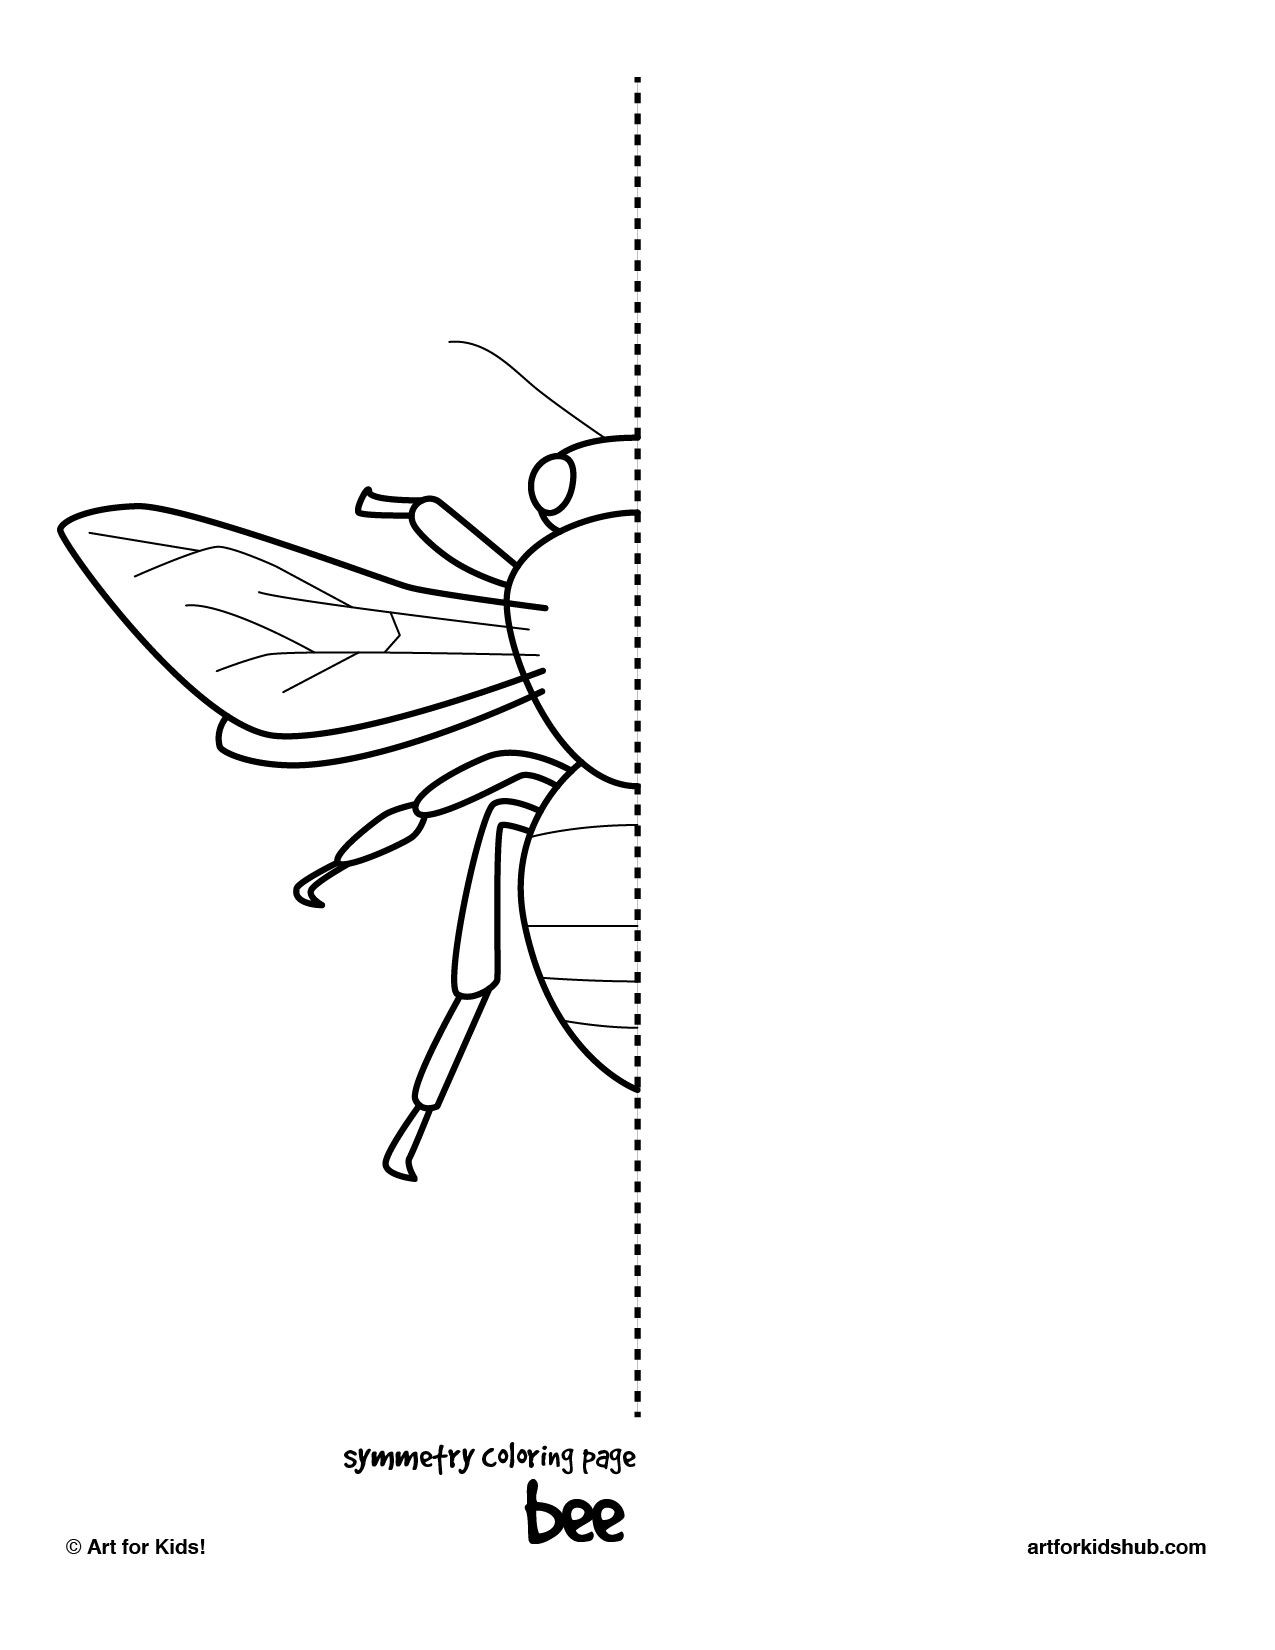 Insect Worksheets for Preschoolers 10 Free Coloring Pages Bug Symmetry Art for Kids Hub